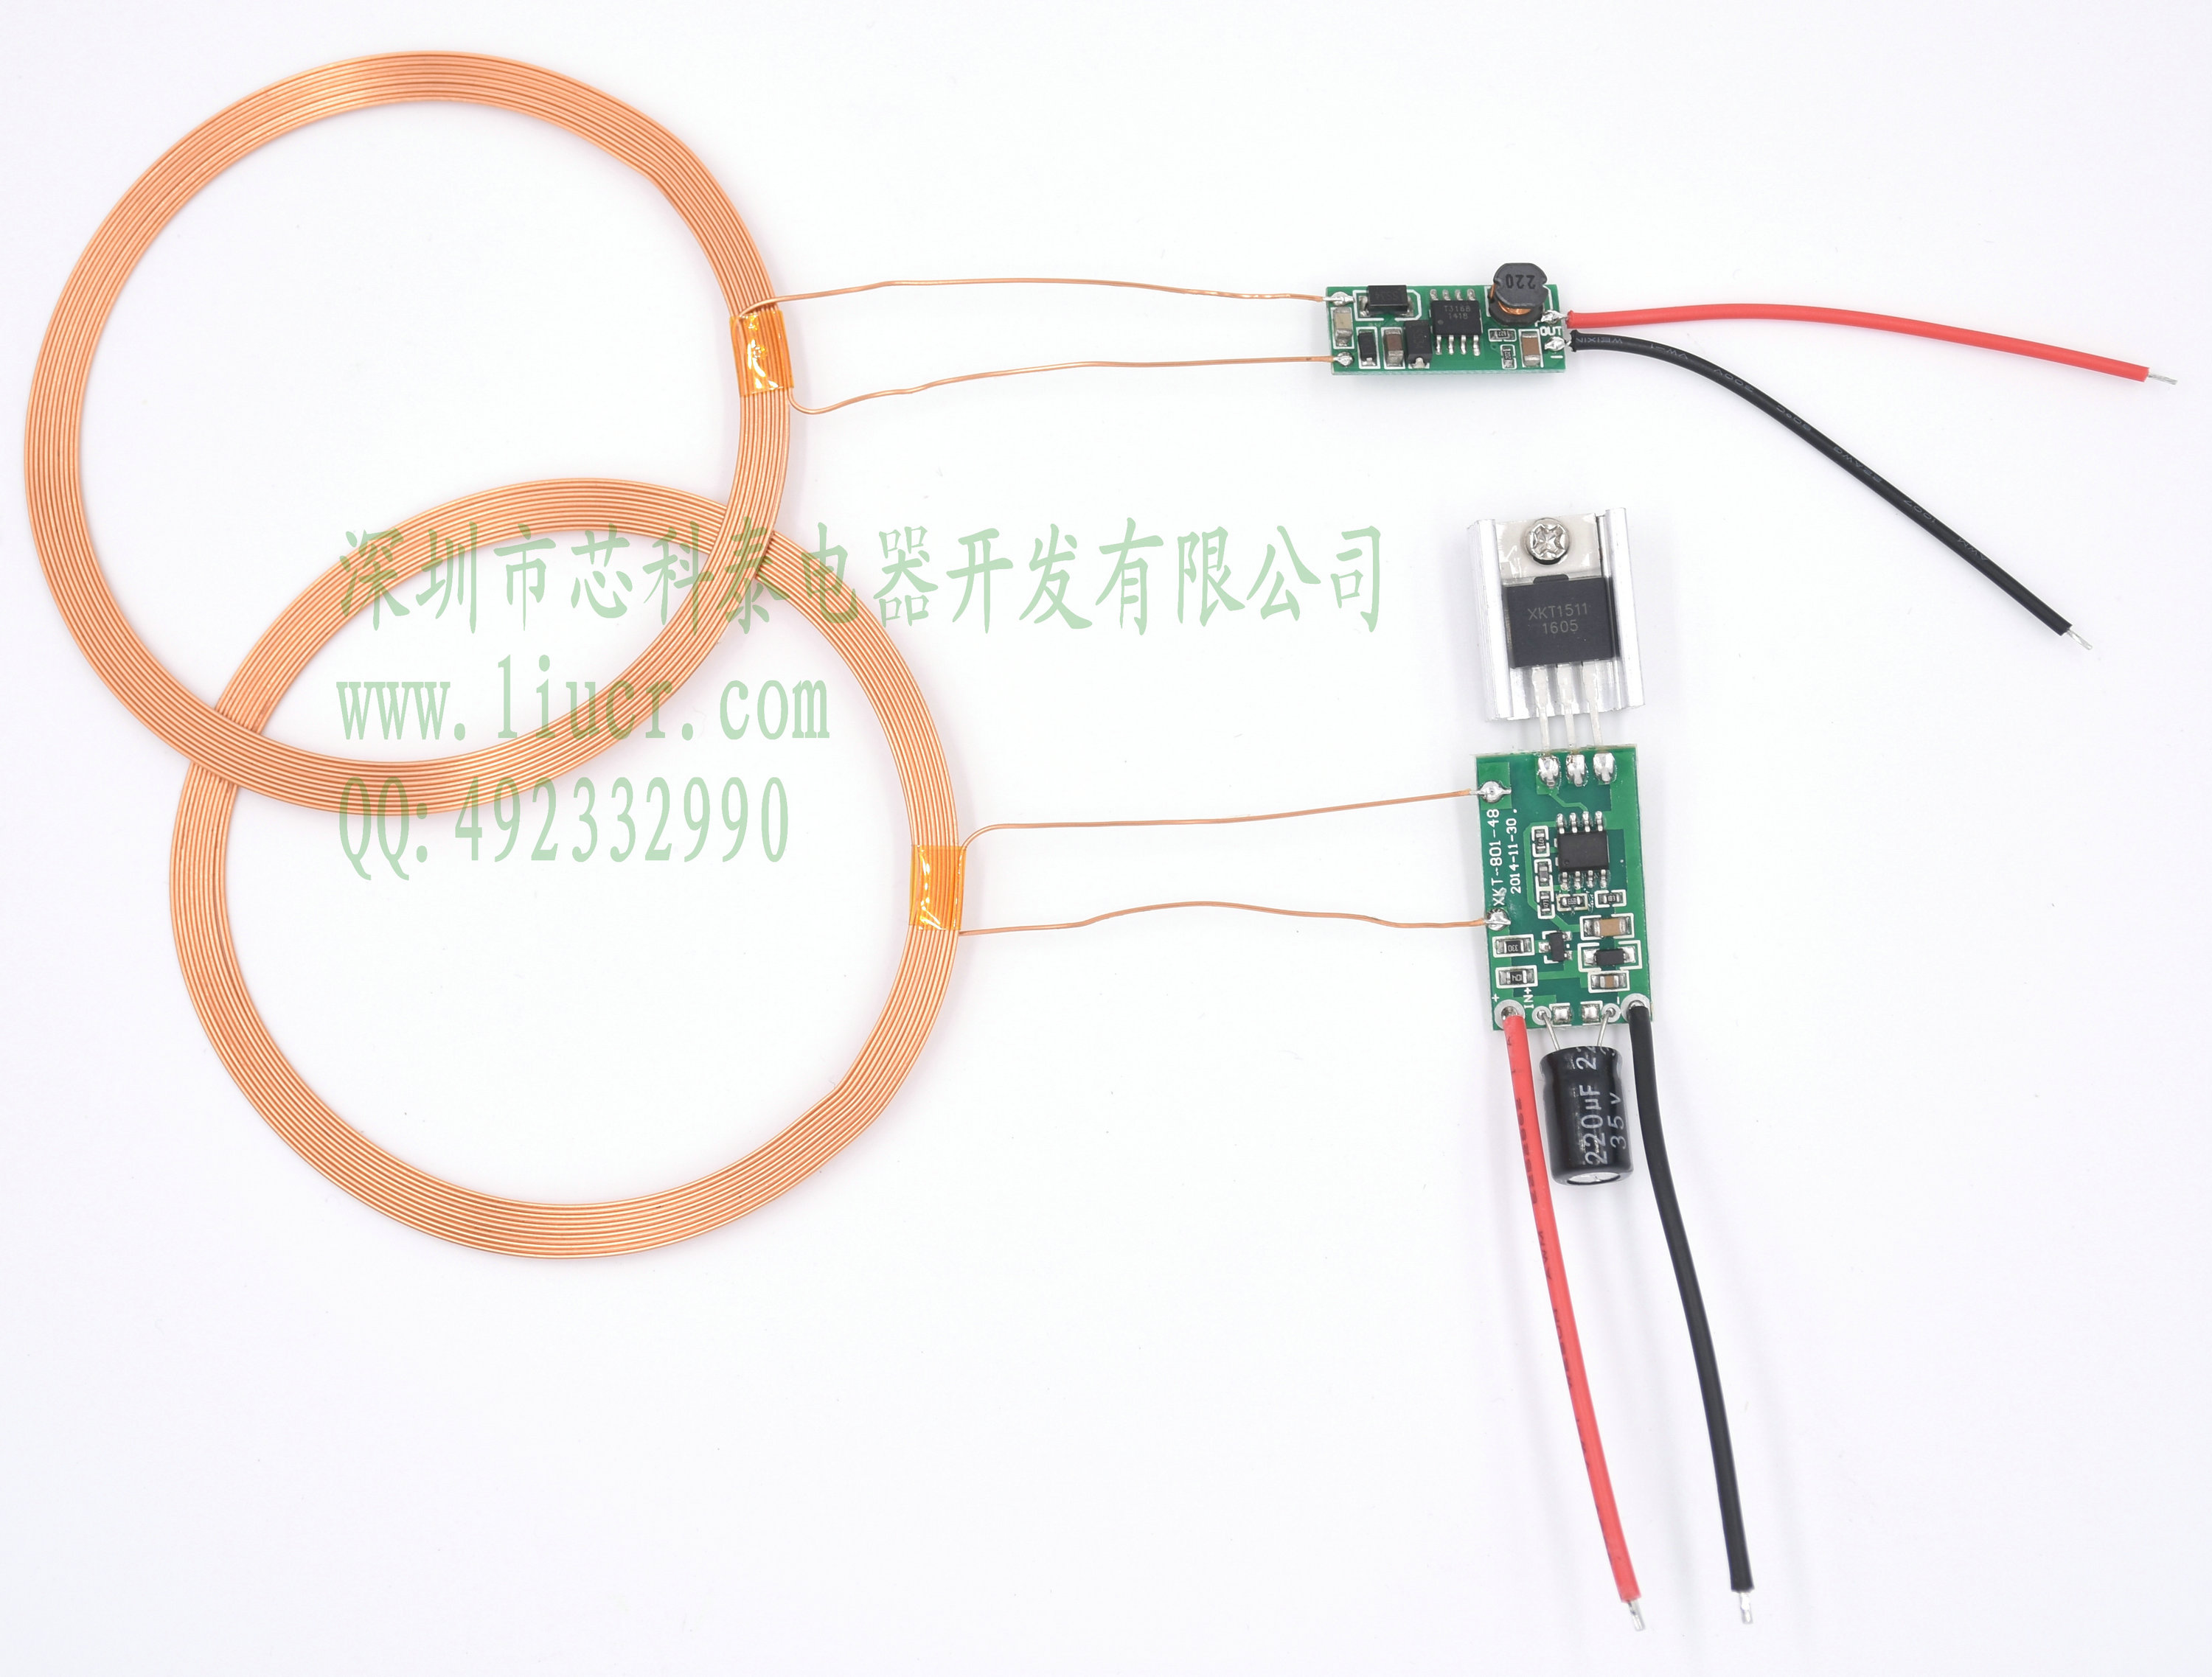 20mm distance output 5V1A long distance high current wireless power supply charging transmission module program 12v 250mm dc long distance wireless power supply module wireless transmission charging module module